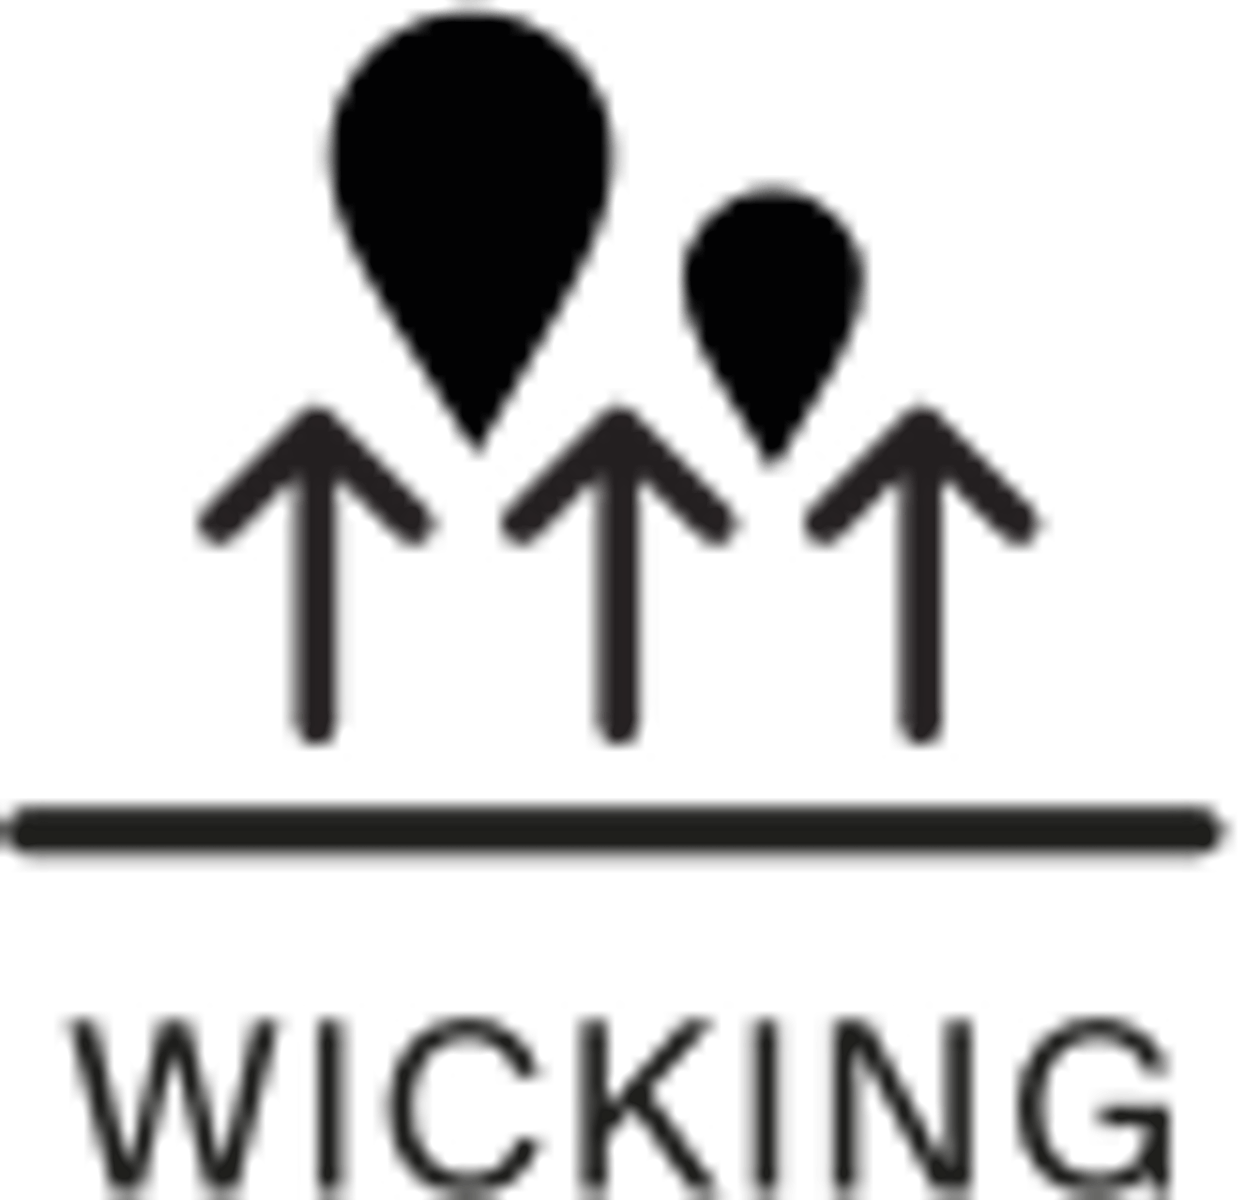 Wicking certification